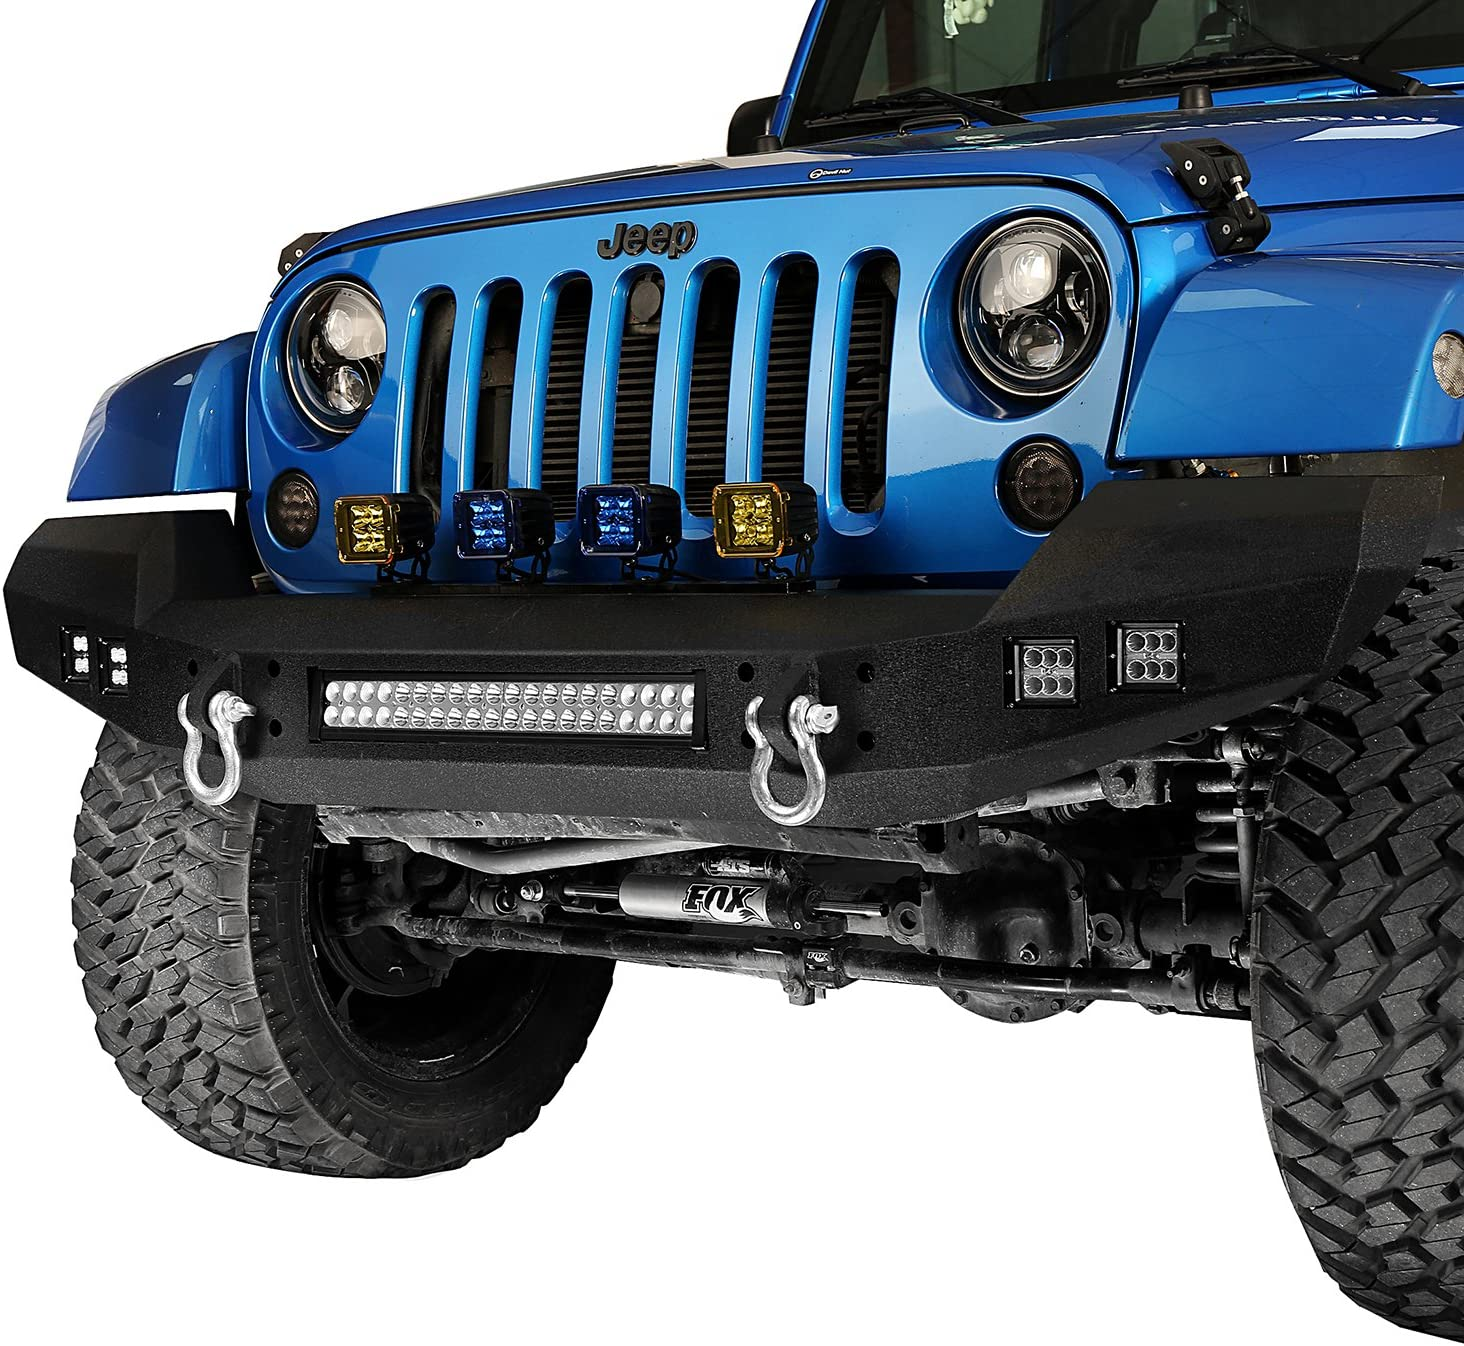 Amazon Com Hooke Road Climber Bumper Full Width Front Bumper W D Rings Led Lights Compatible With Jeep Wrangler Jk Unlimited 2007 2018 Automotive